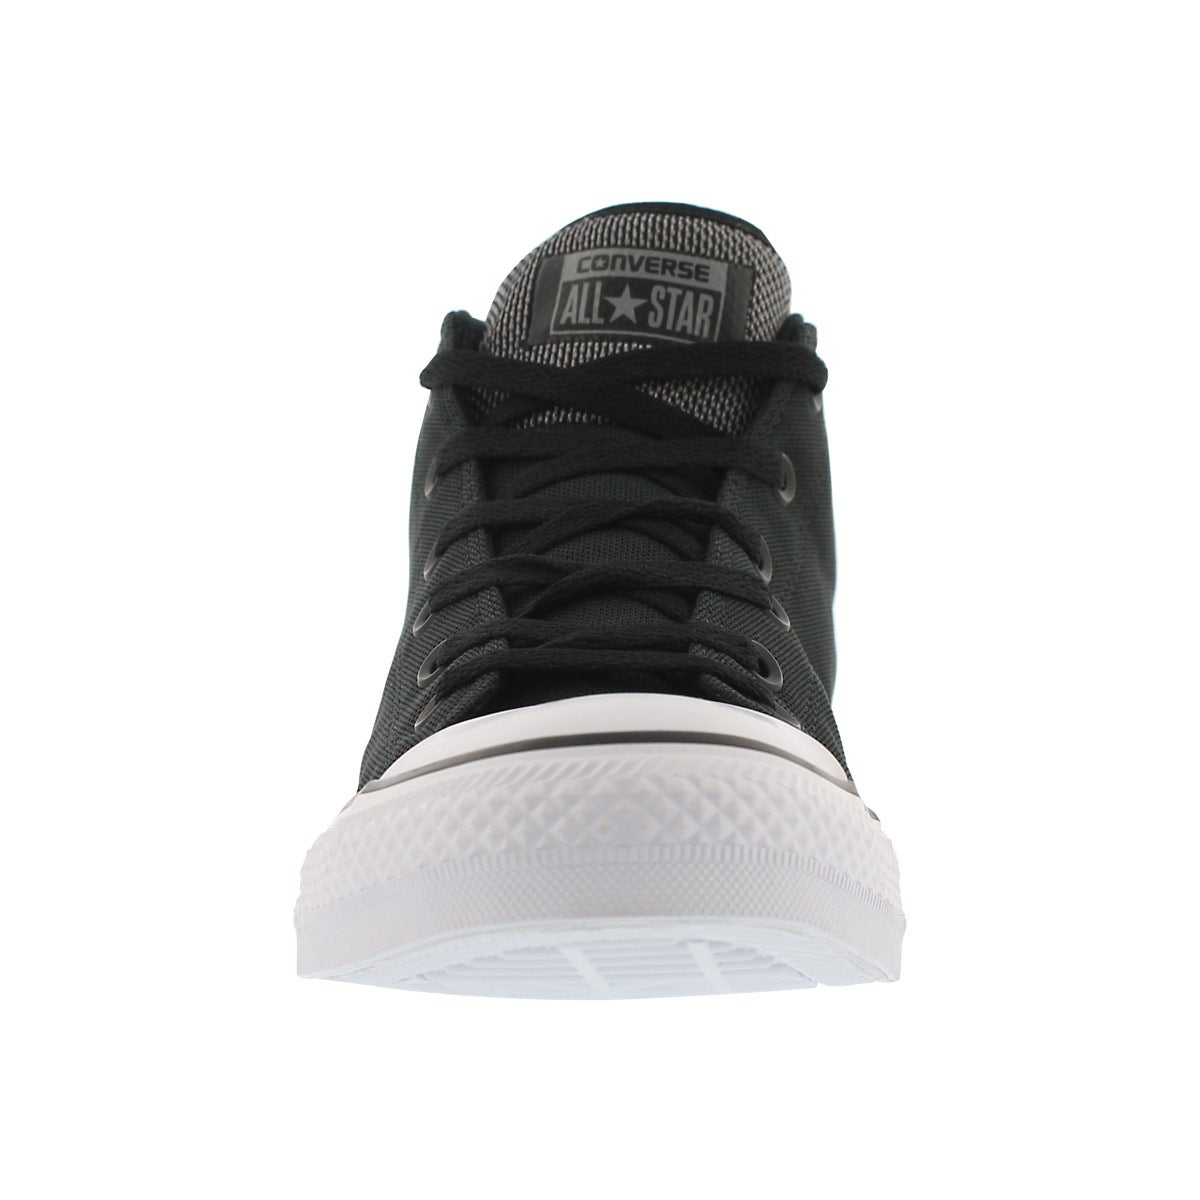 Mns CT A/S Syde Street blk/wht sneaker